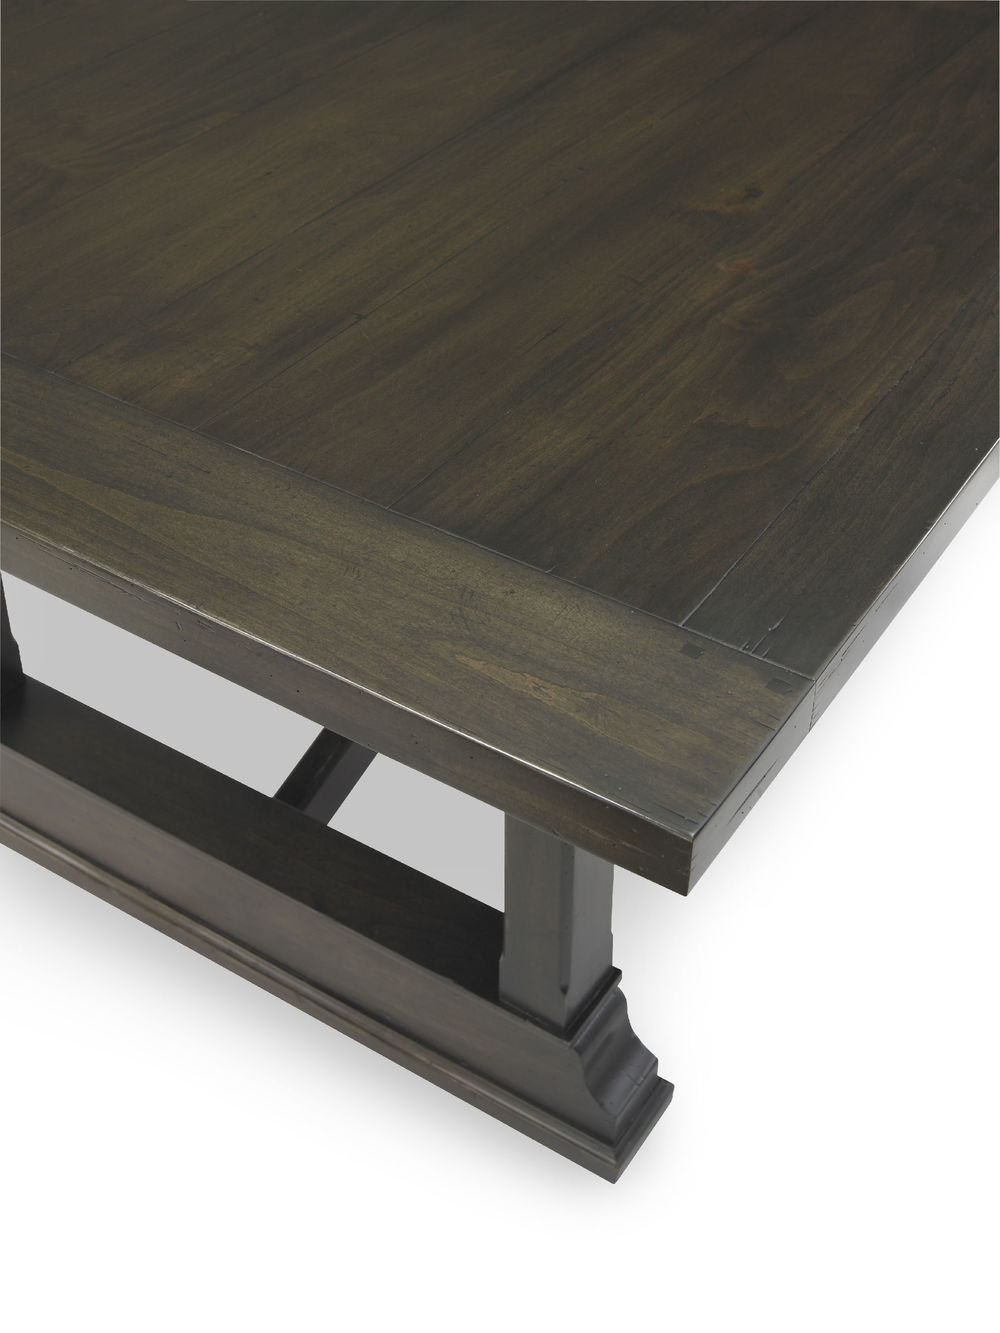 Chaddock - Oakgate Farm Table